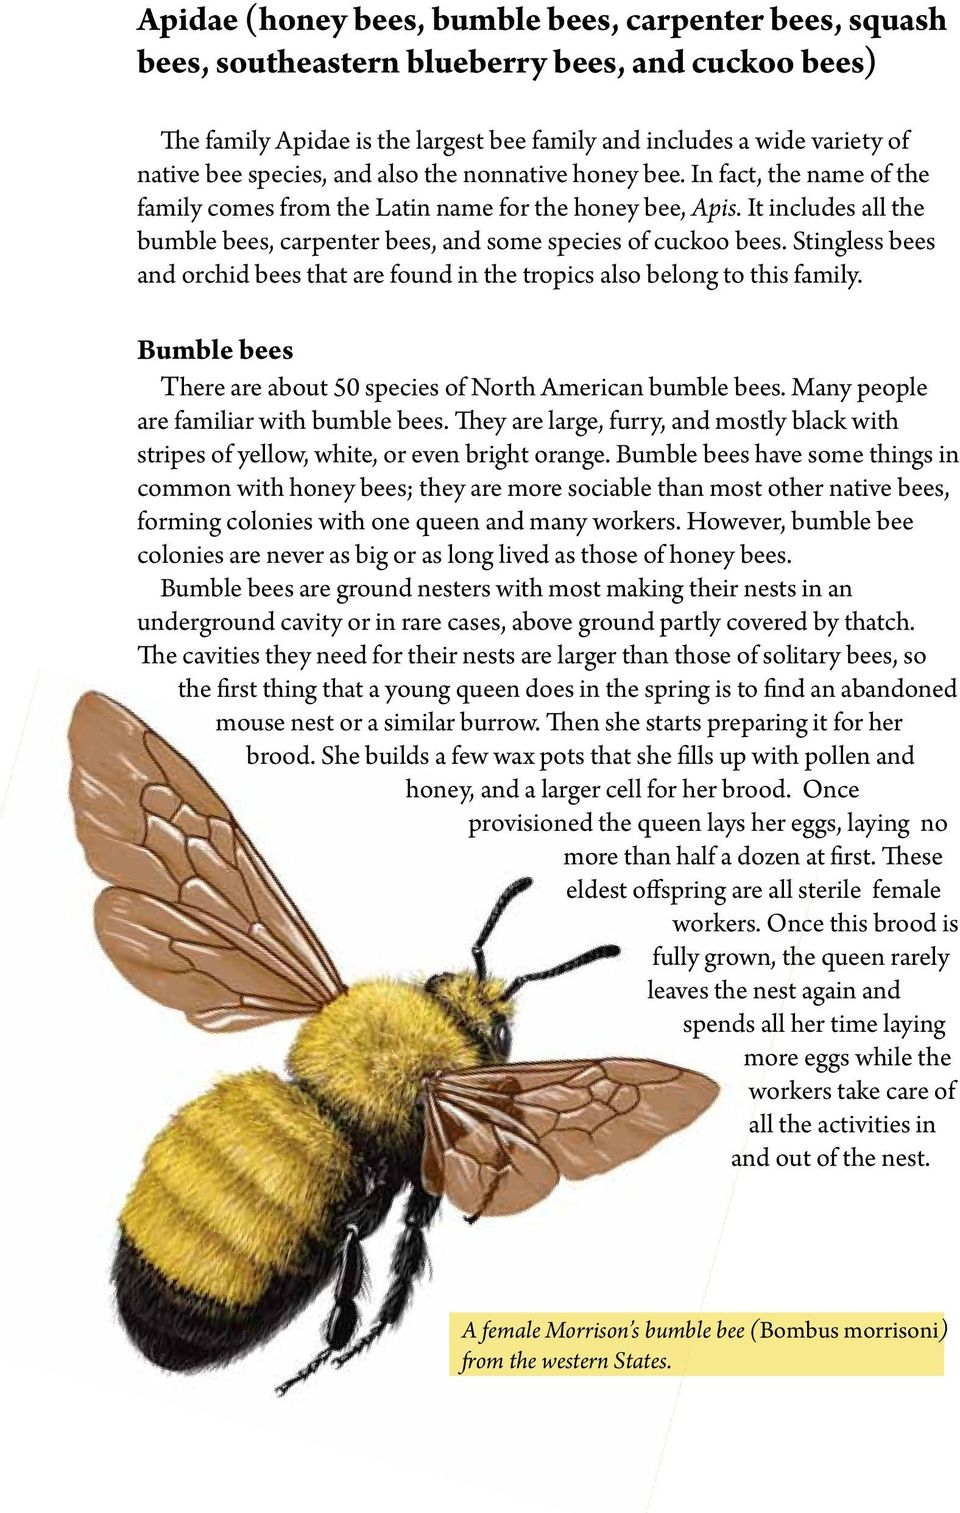 It includes all the bumble bees, carpenter bees, and some species of cuckoo bees. Stingless bees and orchid bees that are found in the tropics also belong to this family.